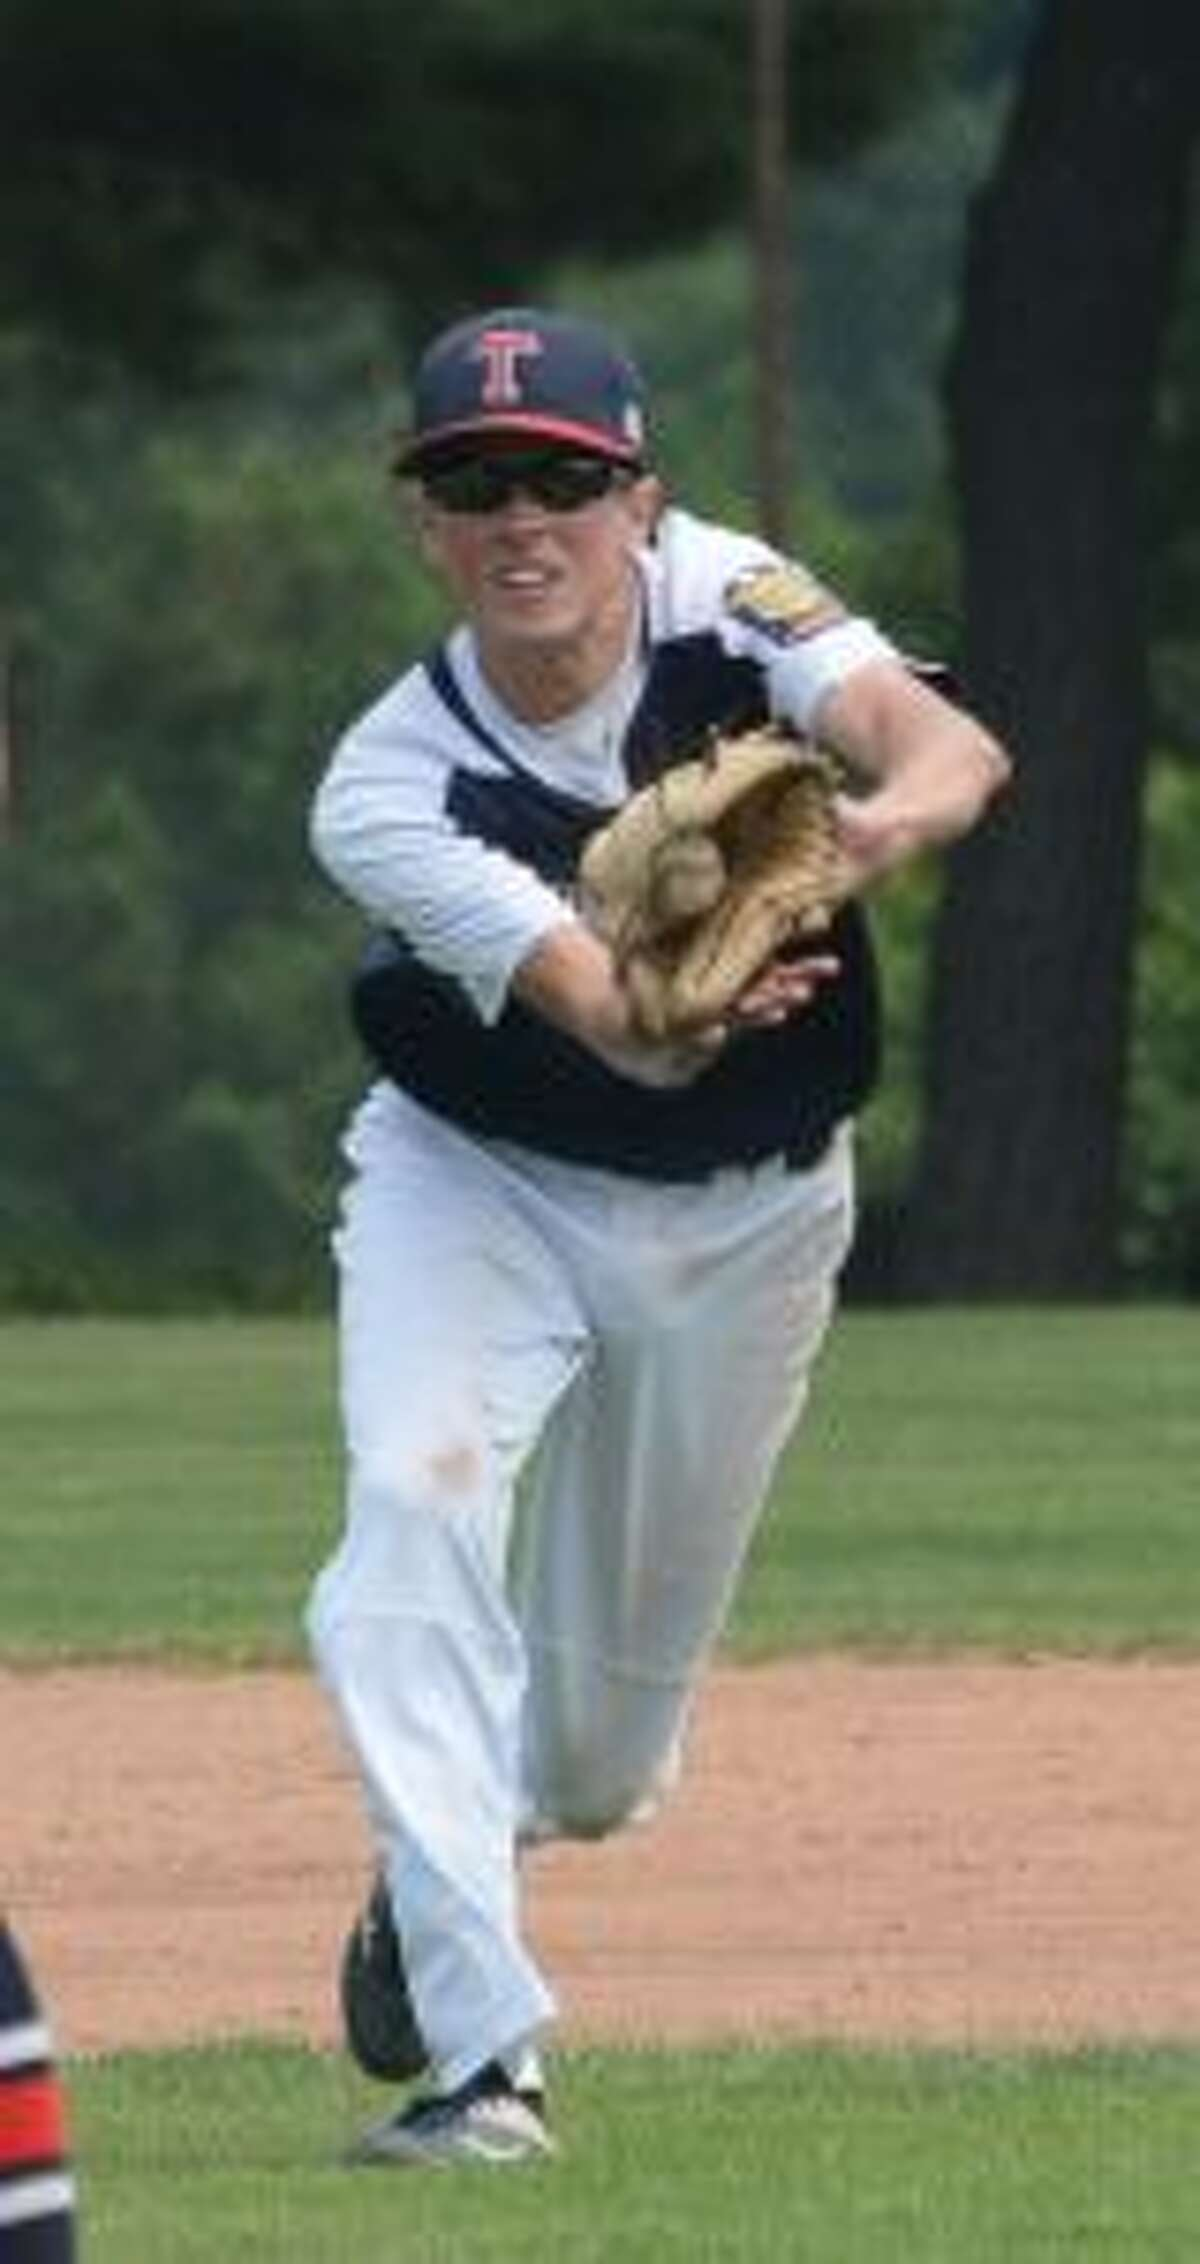 Trumbull's Thomas Krois gloves a line drive. - Andy Hutchison photos